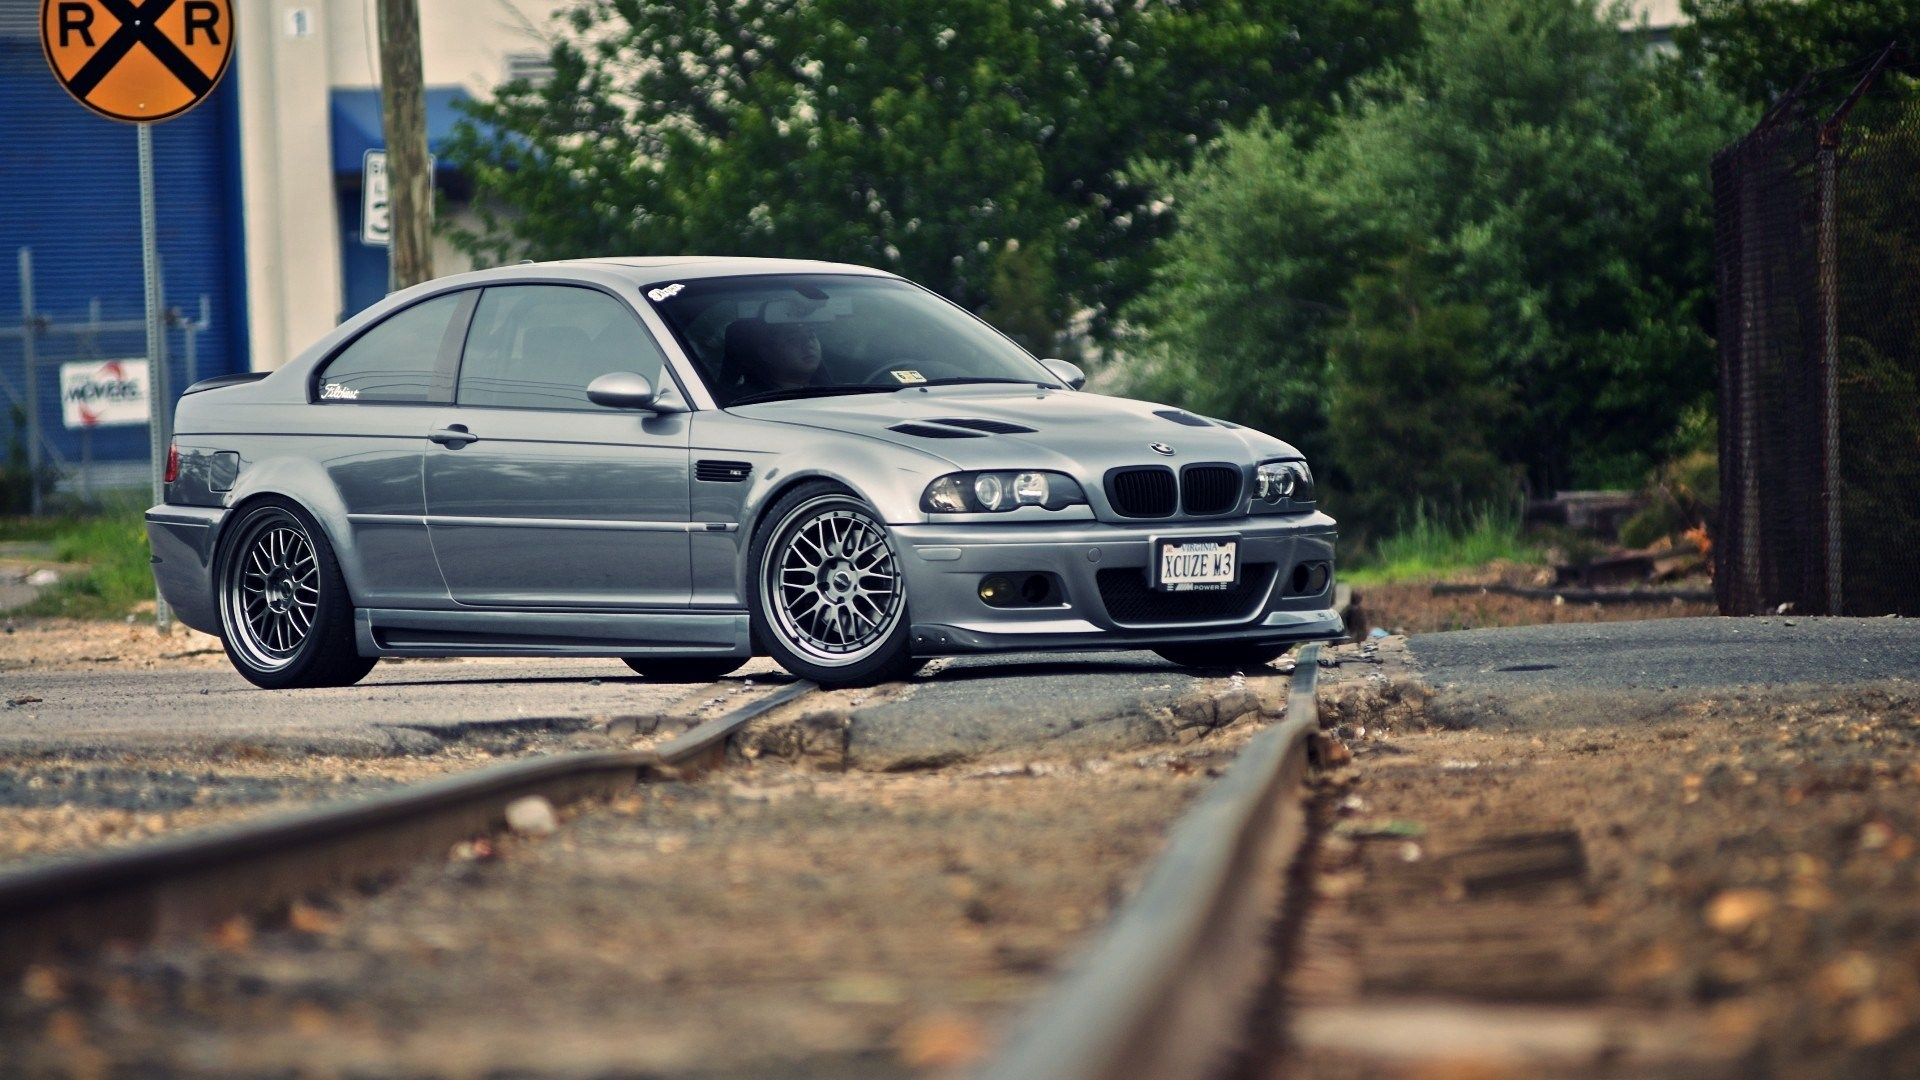 download Bmw M3 E46 Wallpaper HD [1920x1080] for your Desktop 1920x1080